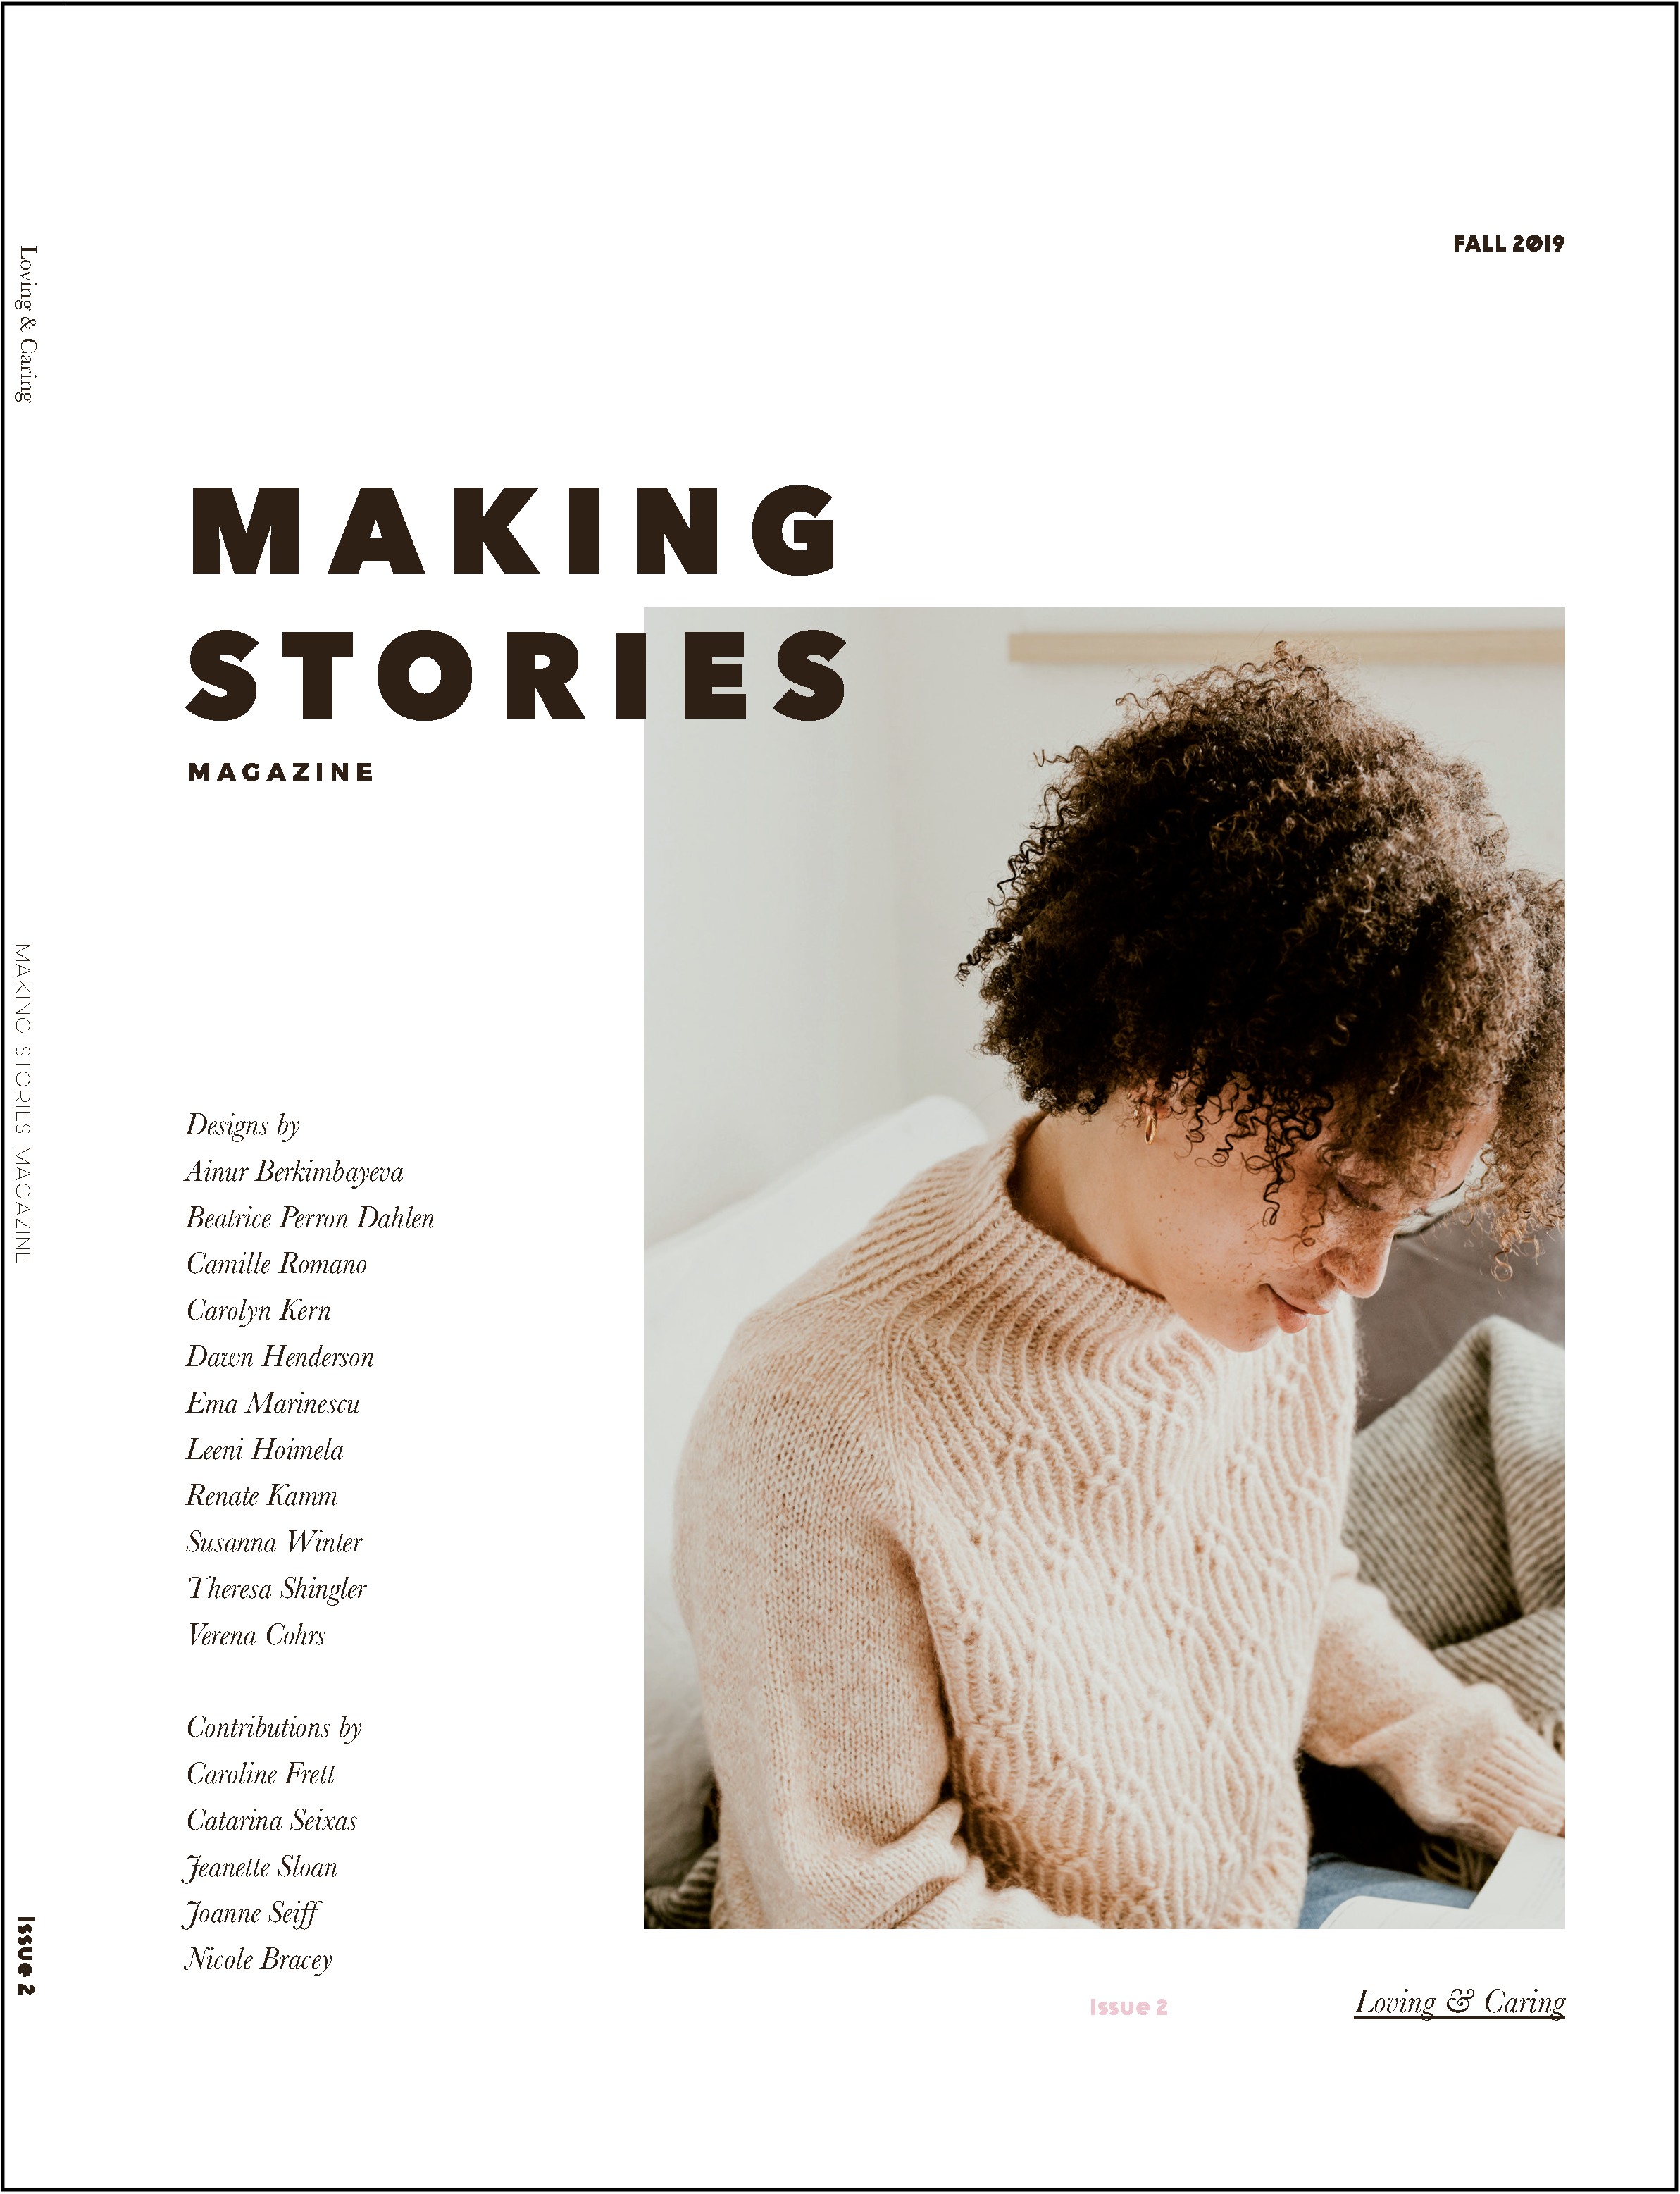 Making Stories: Issue 2